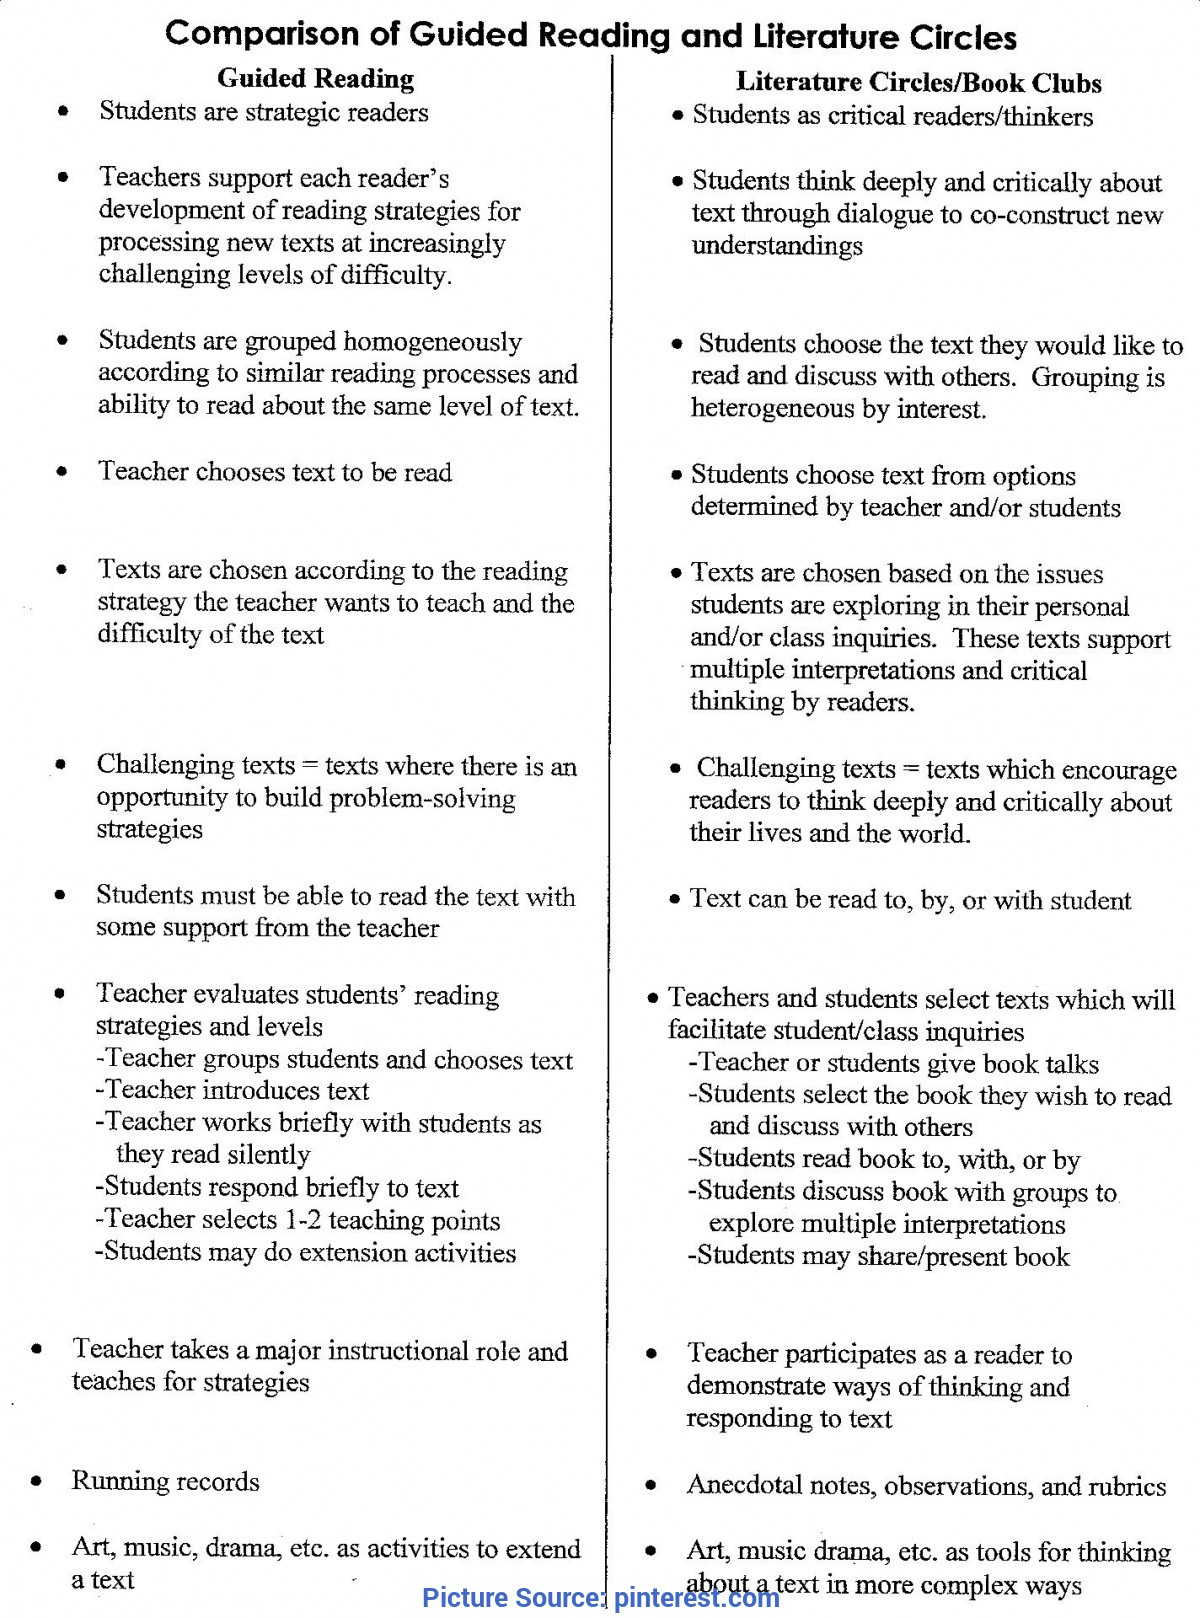 Best 5Th Grade Guided Reading Lesson Plans Guided Reading   Guided_Reading_-_Literature_Circles.Jp